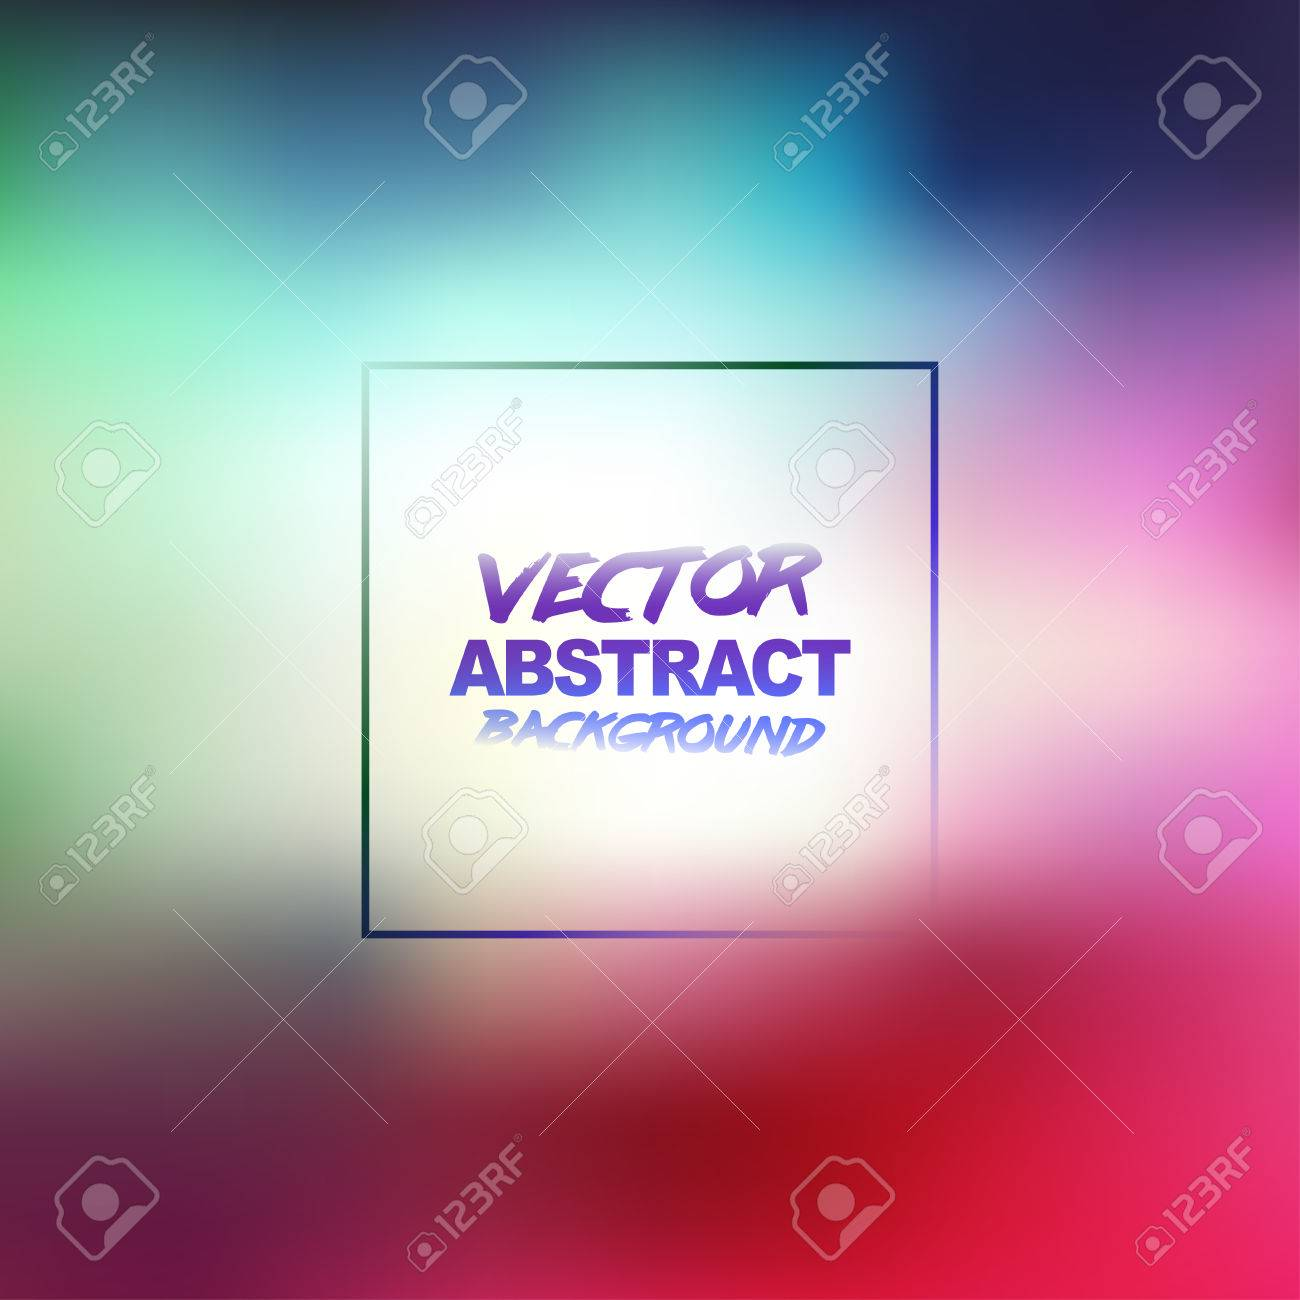 Colorful Smooth Gradient Color Background Wallpaper Inspired